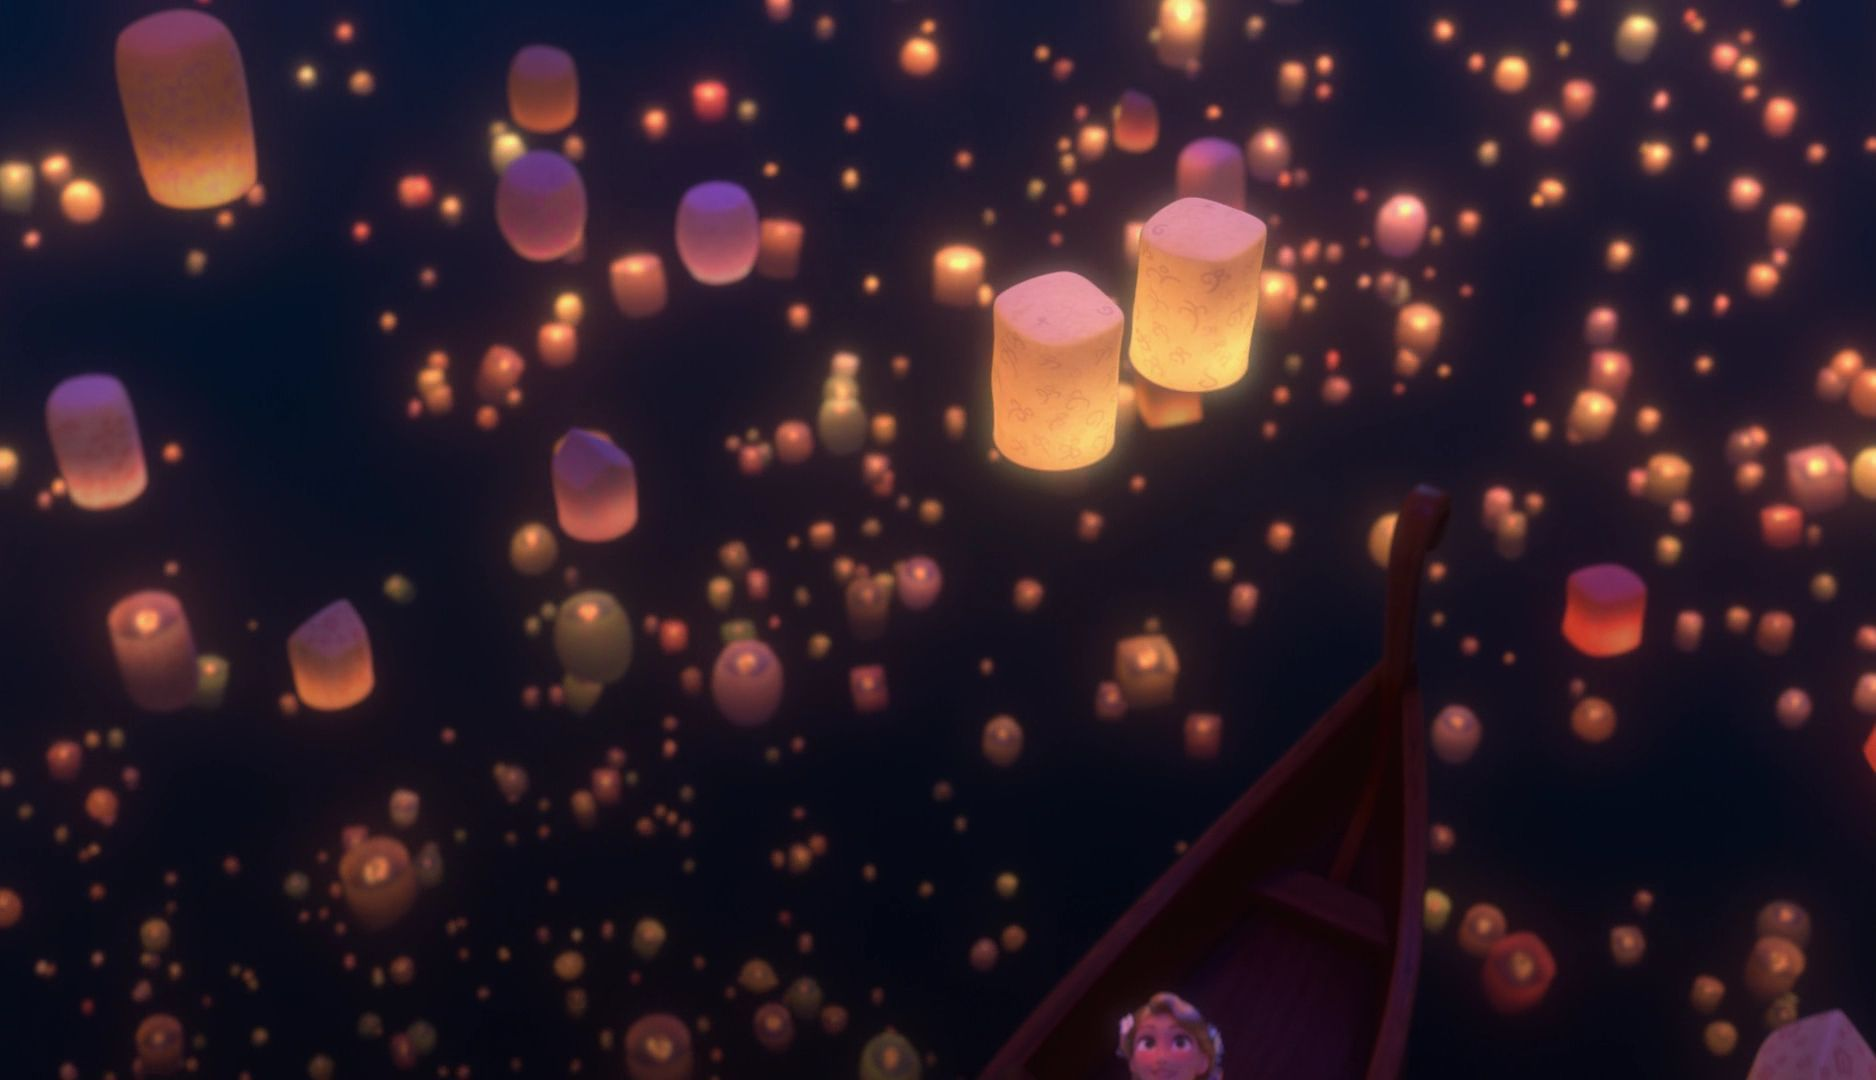 Tangled Lanterns Wallpaper Posted By Samantha Walker